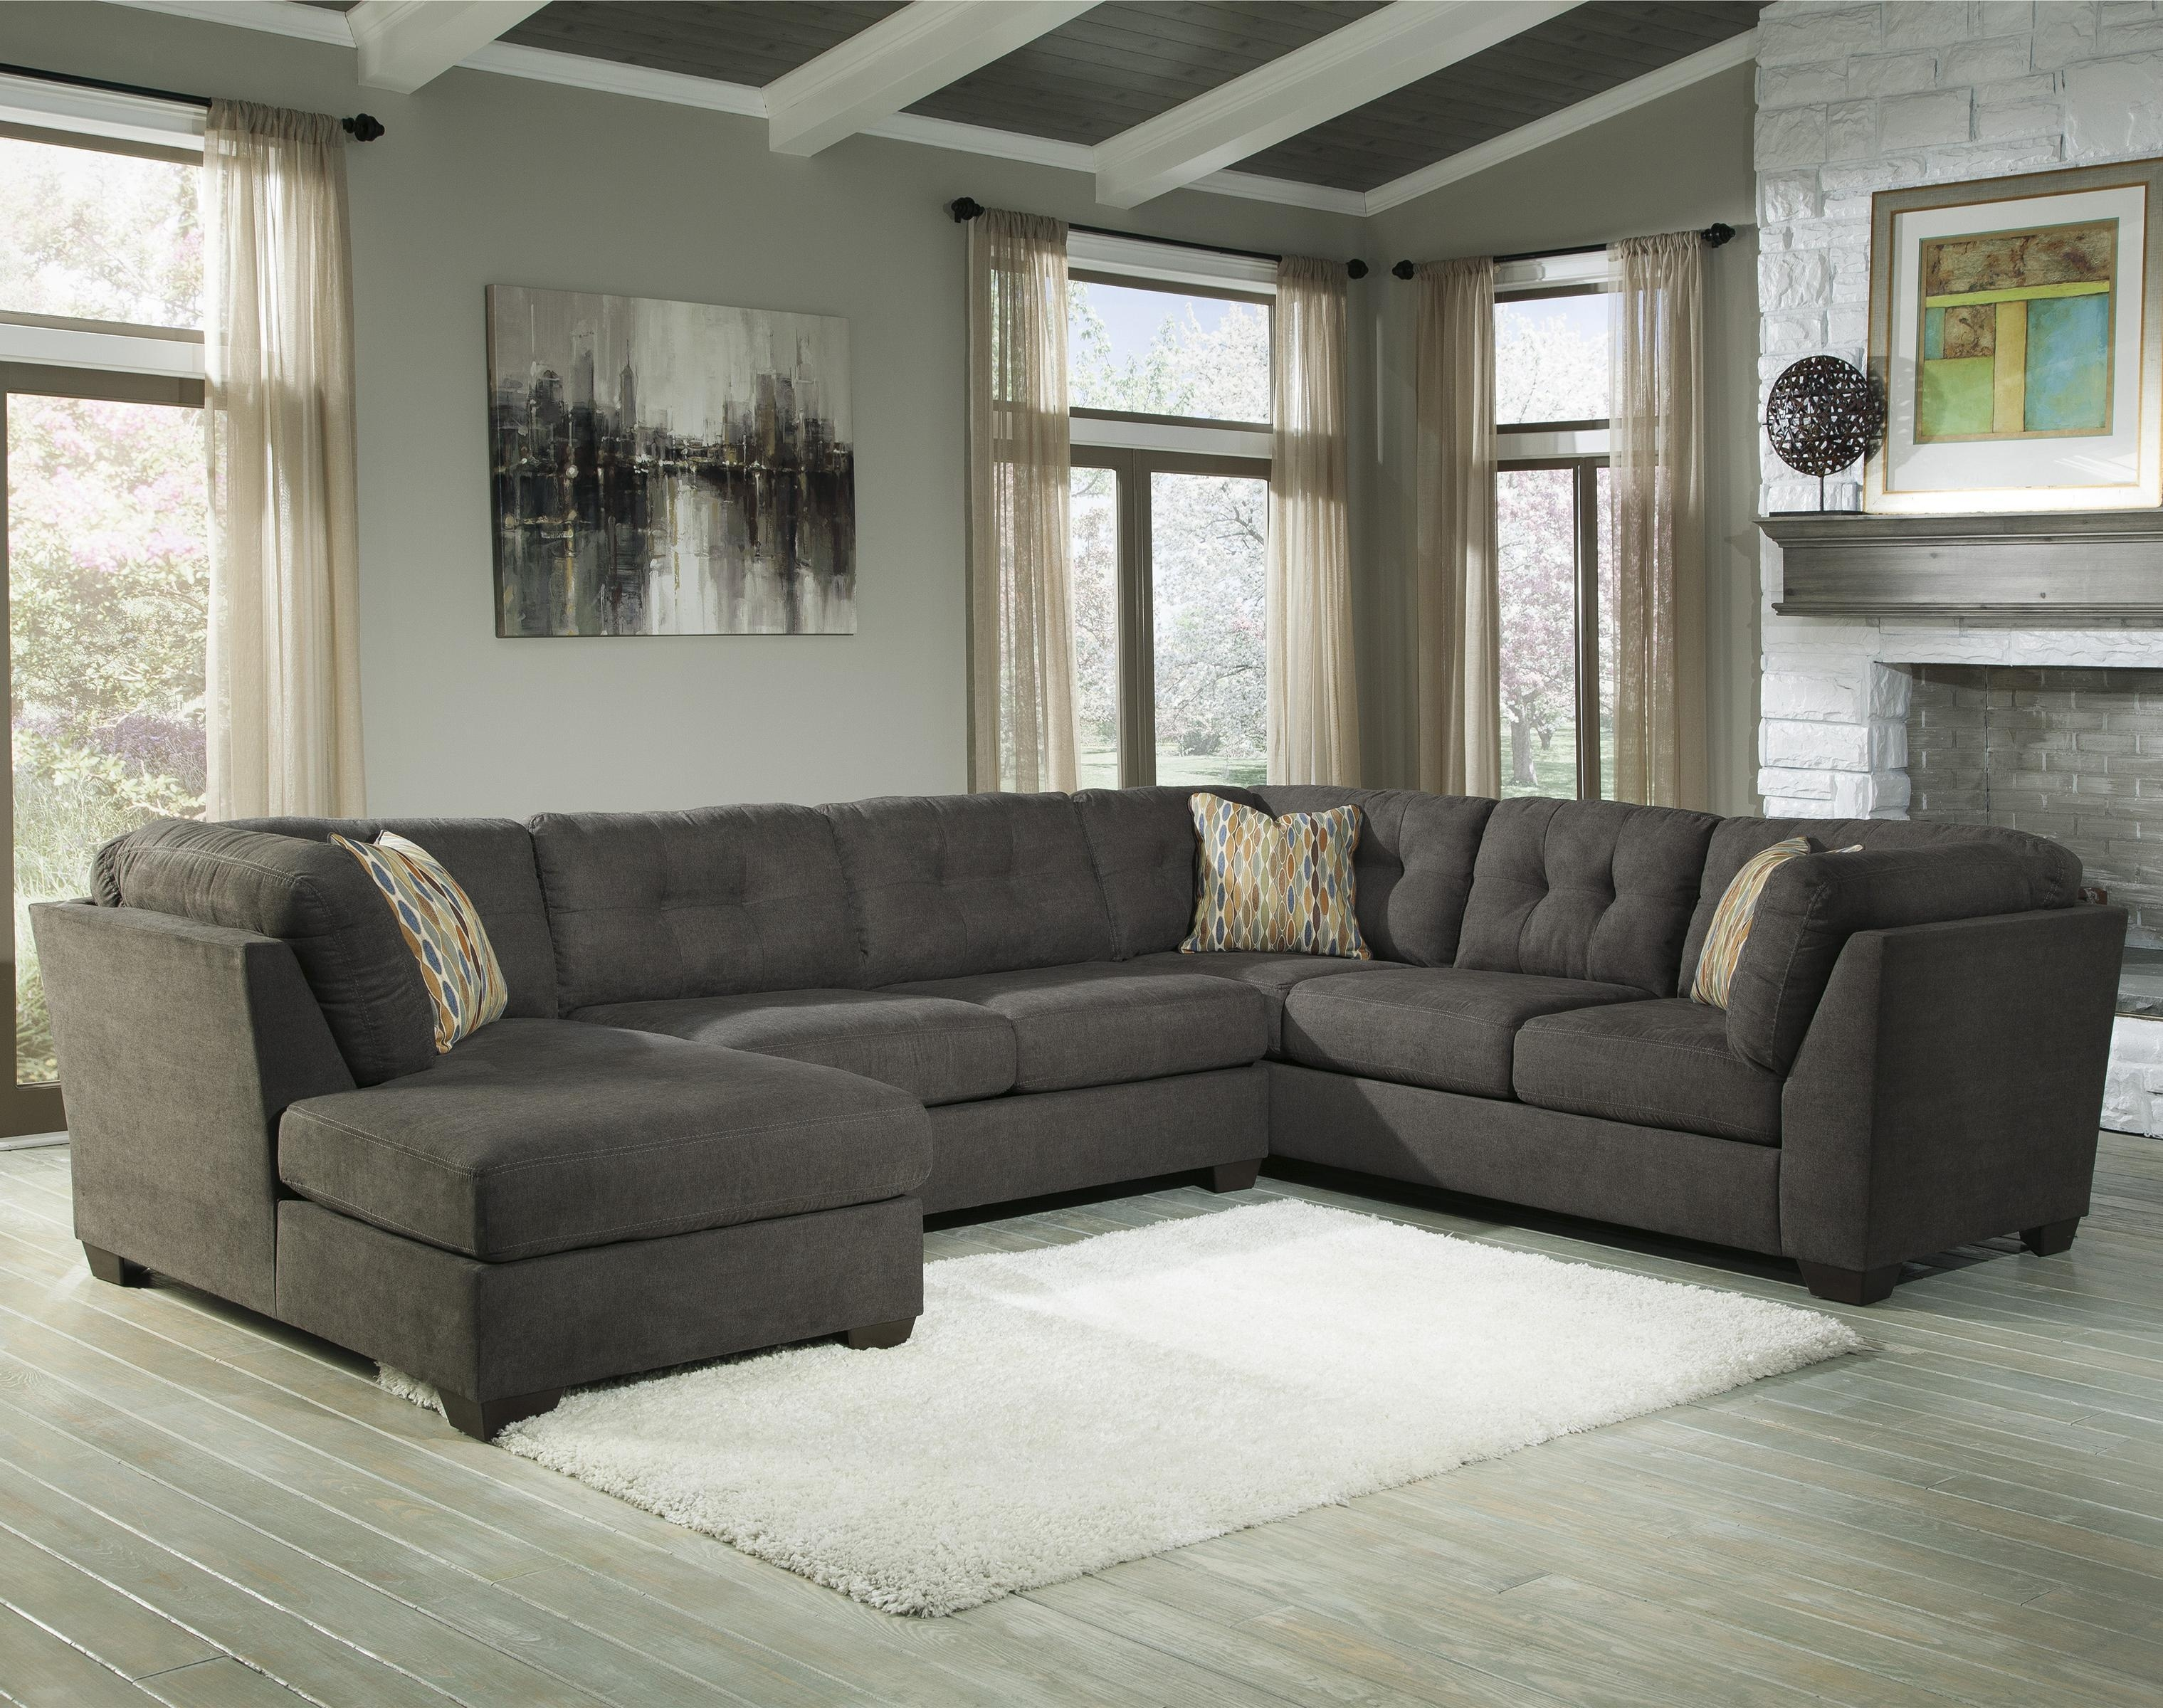 Benchcraft Delta City – Steel 3 Piece Modular Sectional W/ Armless Throughout Ashley Sectional Sleeper (View 3 of 15)